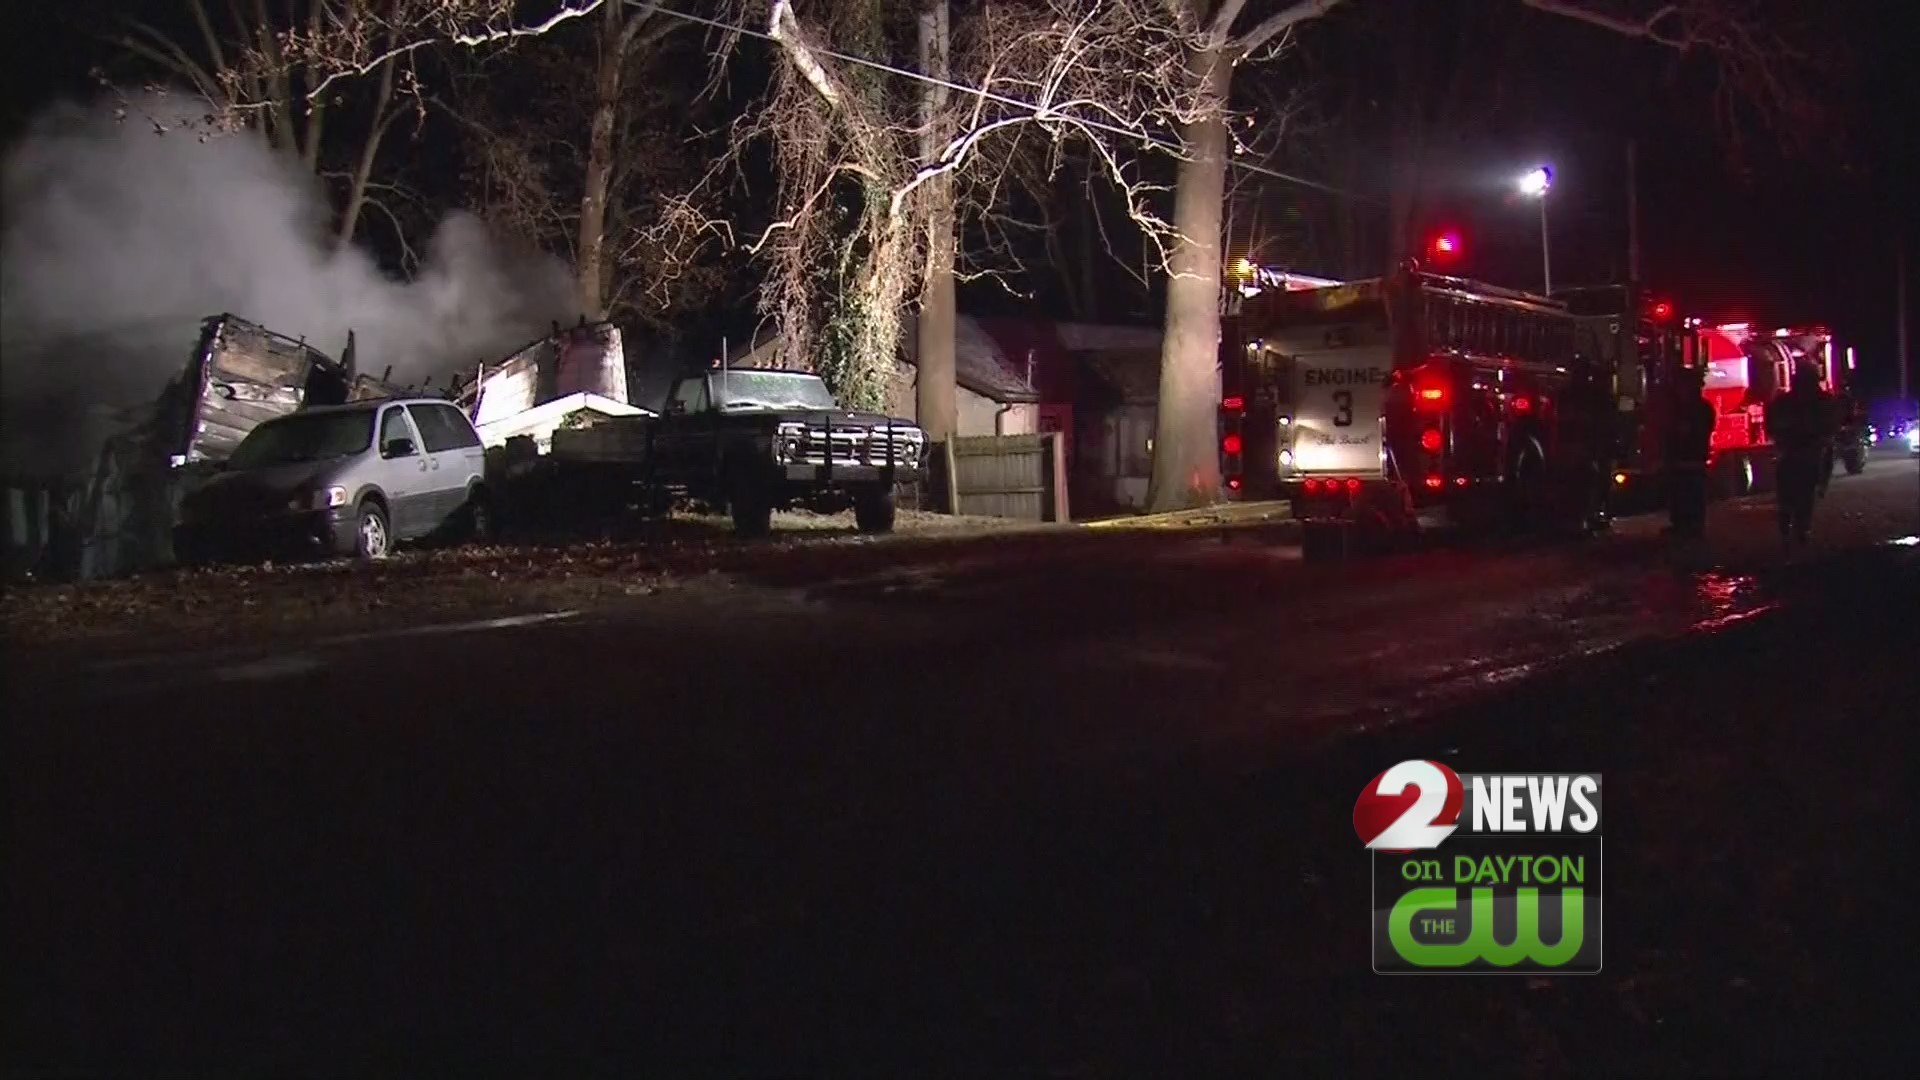 6 people, including 4 children, believed dead in Indiana house fire